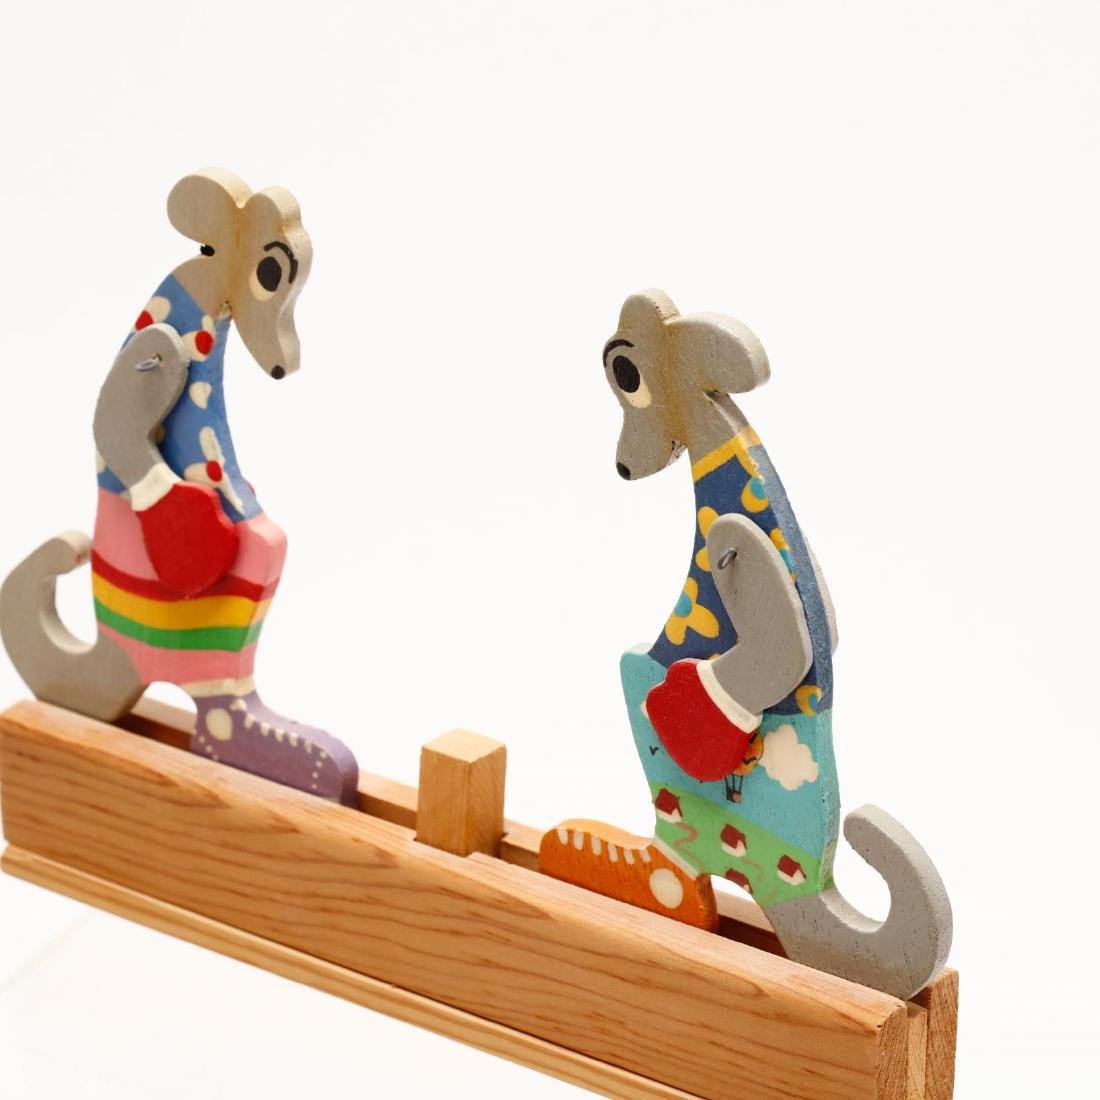 A Group of Vintage Wooden Toys - 3